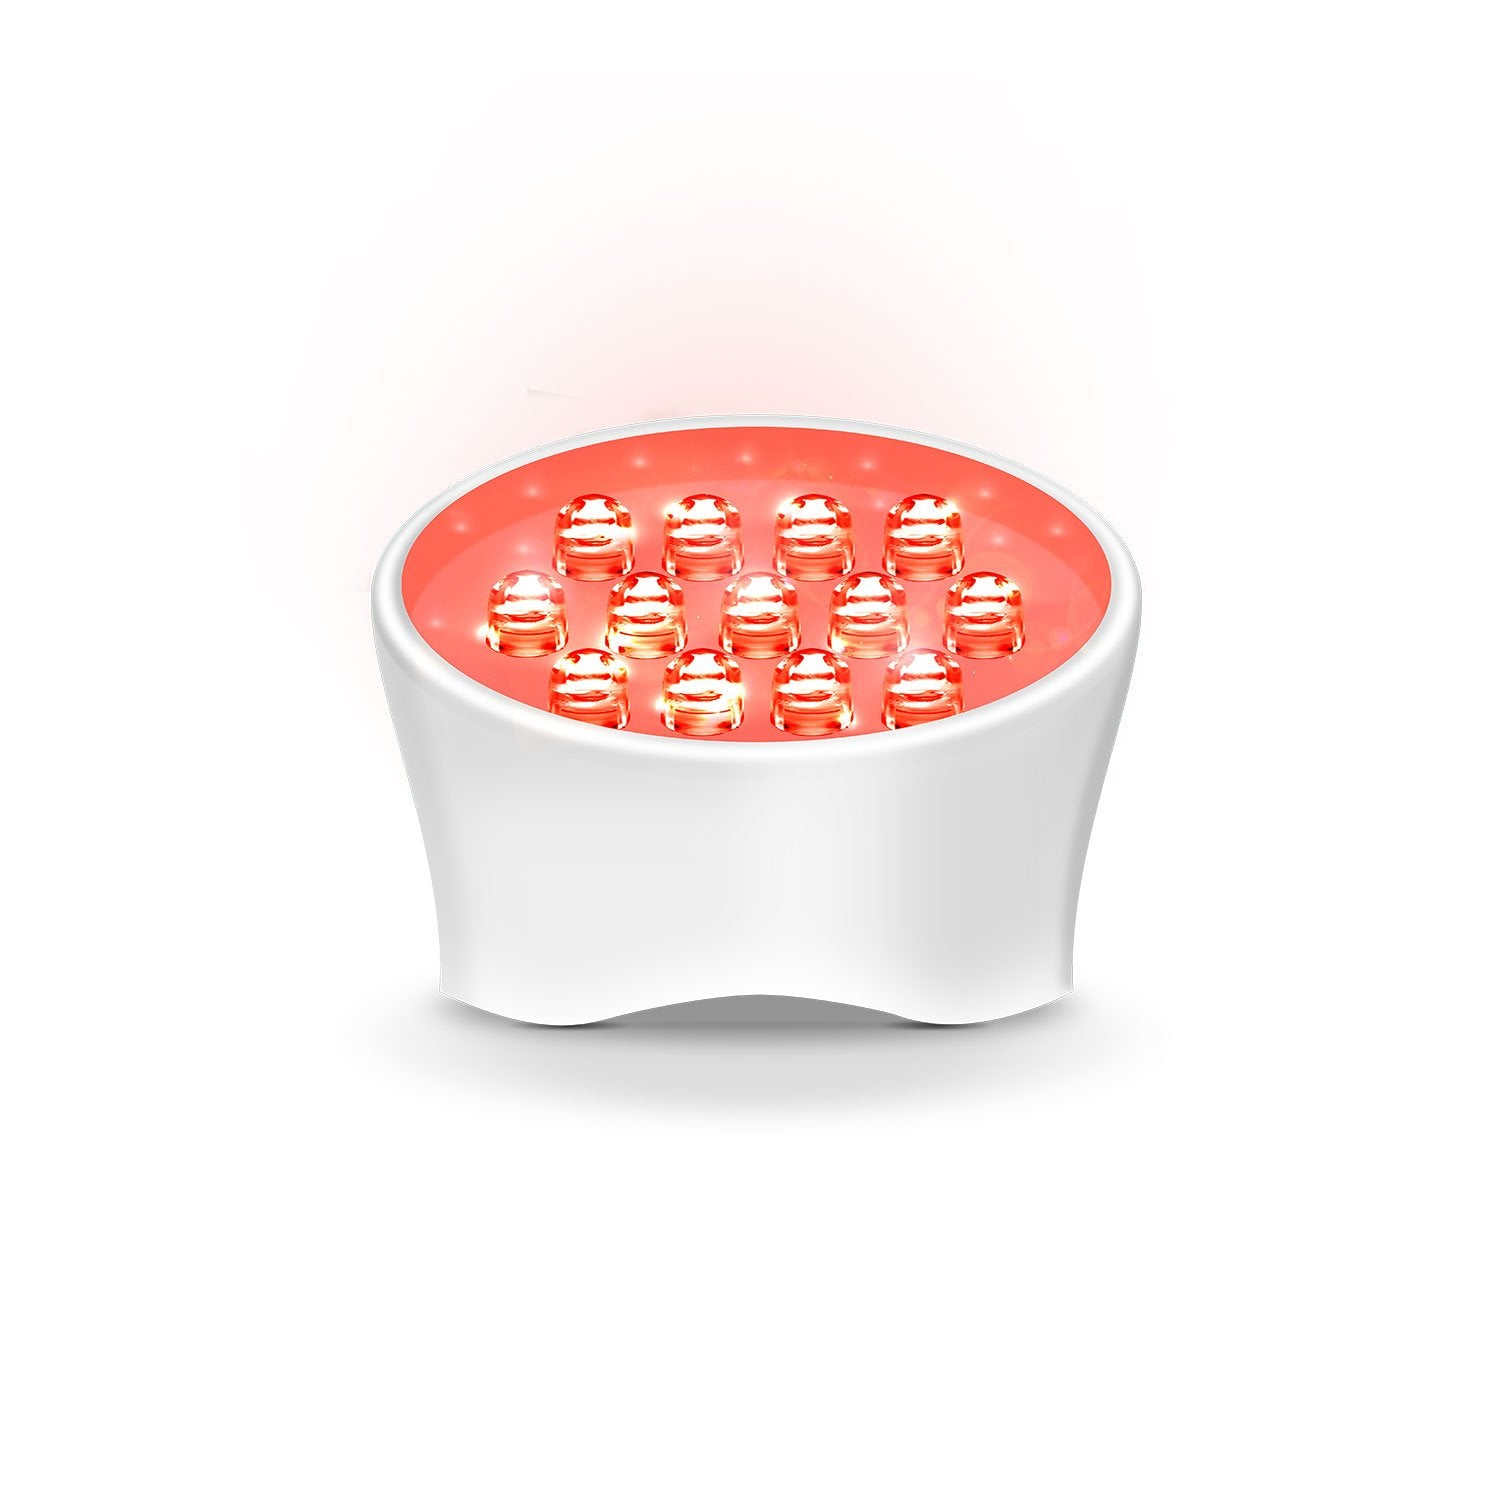 Nuovaluce Microcurrent & Light Therapy Device